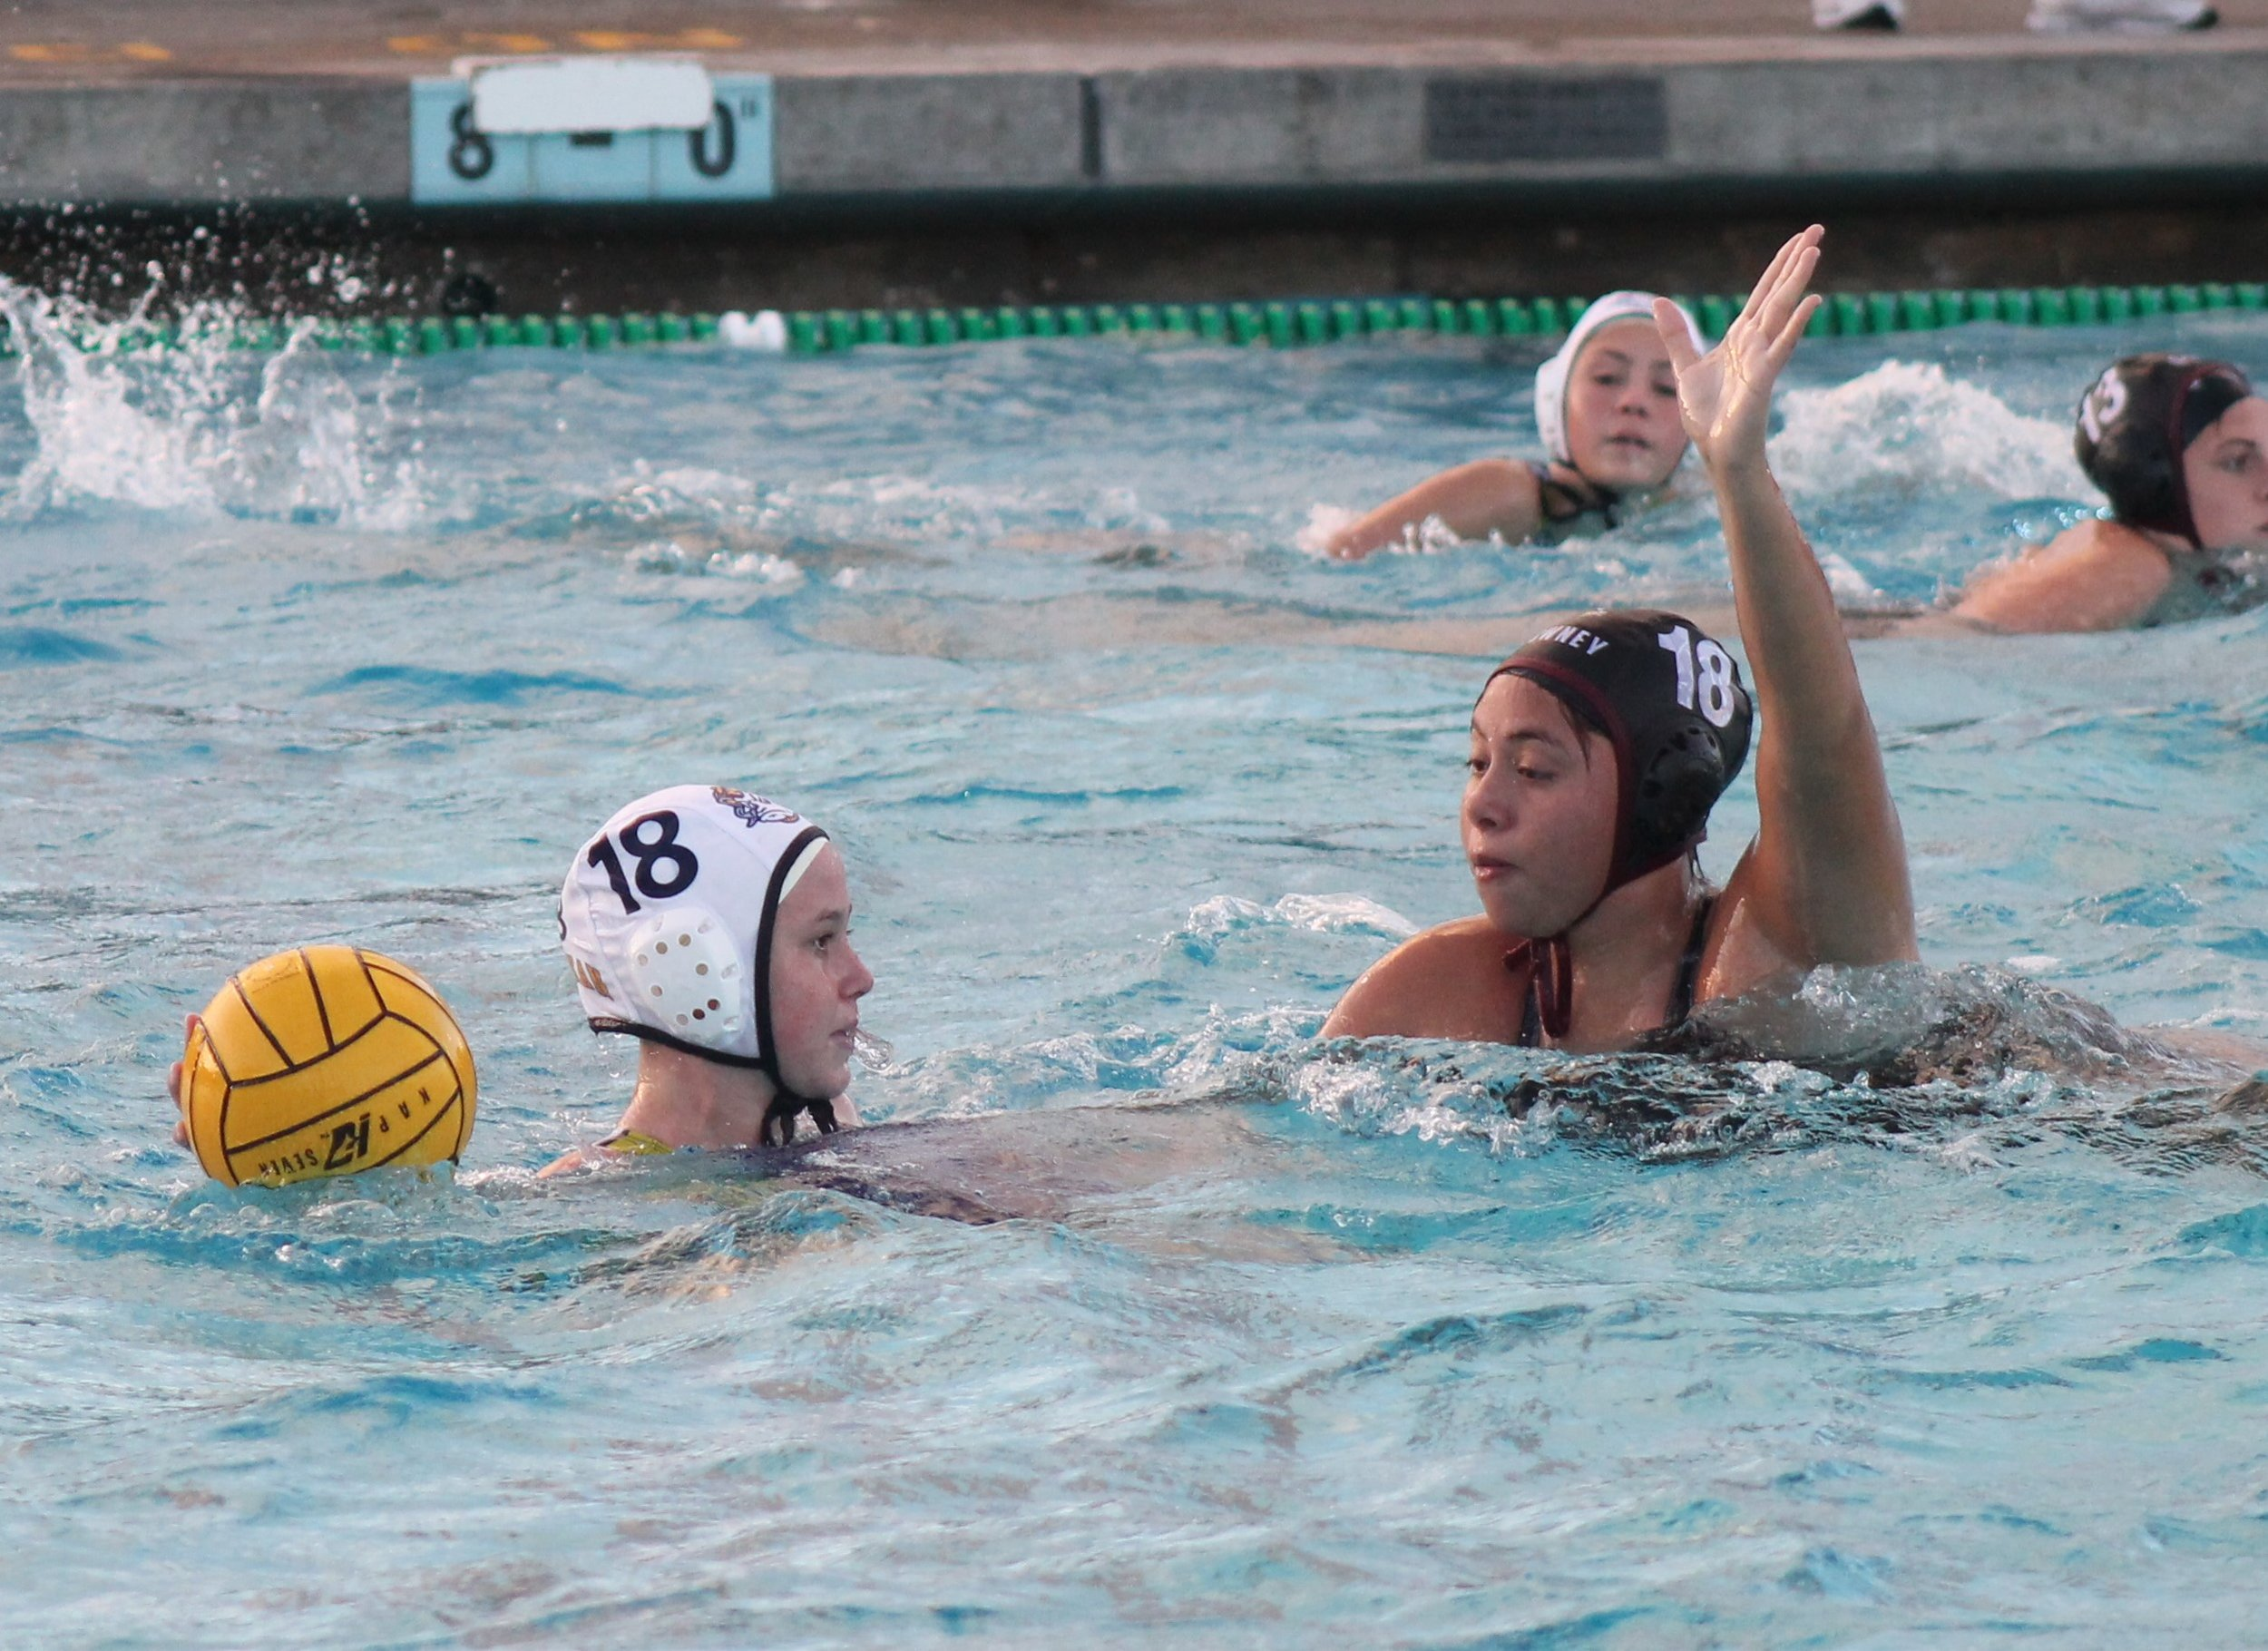 PHOTO BY DAVID CASILLAS   Downey's Alondra Villa defends against a Millikan attacker. Downey girls water polo beat Millikan, 8-6, on Tuesday in the first round of CIF playoffs.